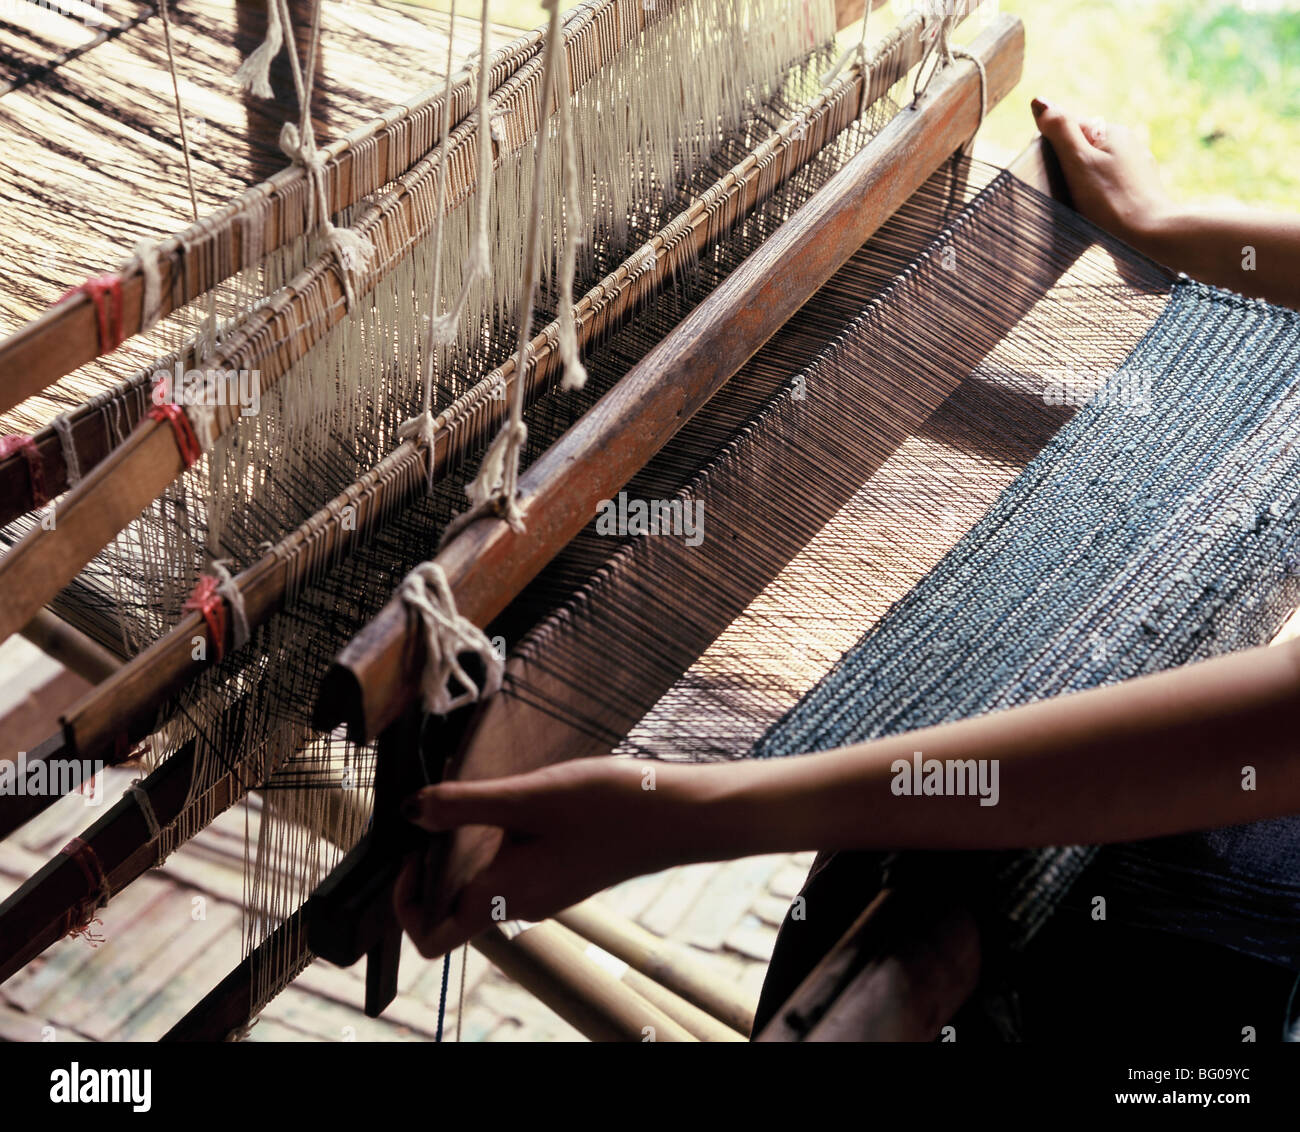 Weaving cotton in Chiang Mai, Thailand, Southeast Asia, Asia - Stock Image